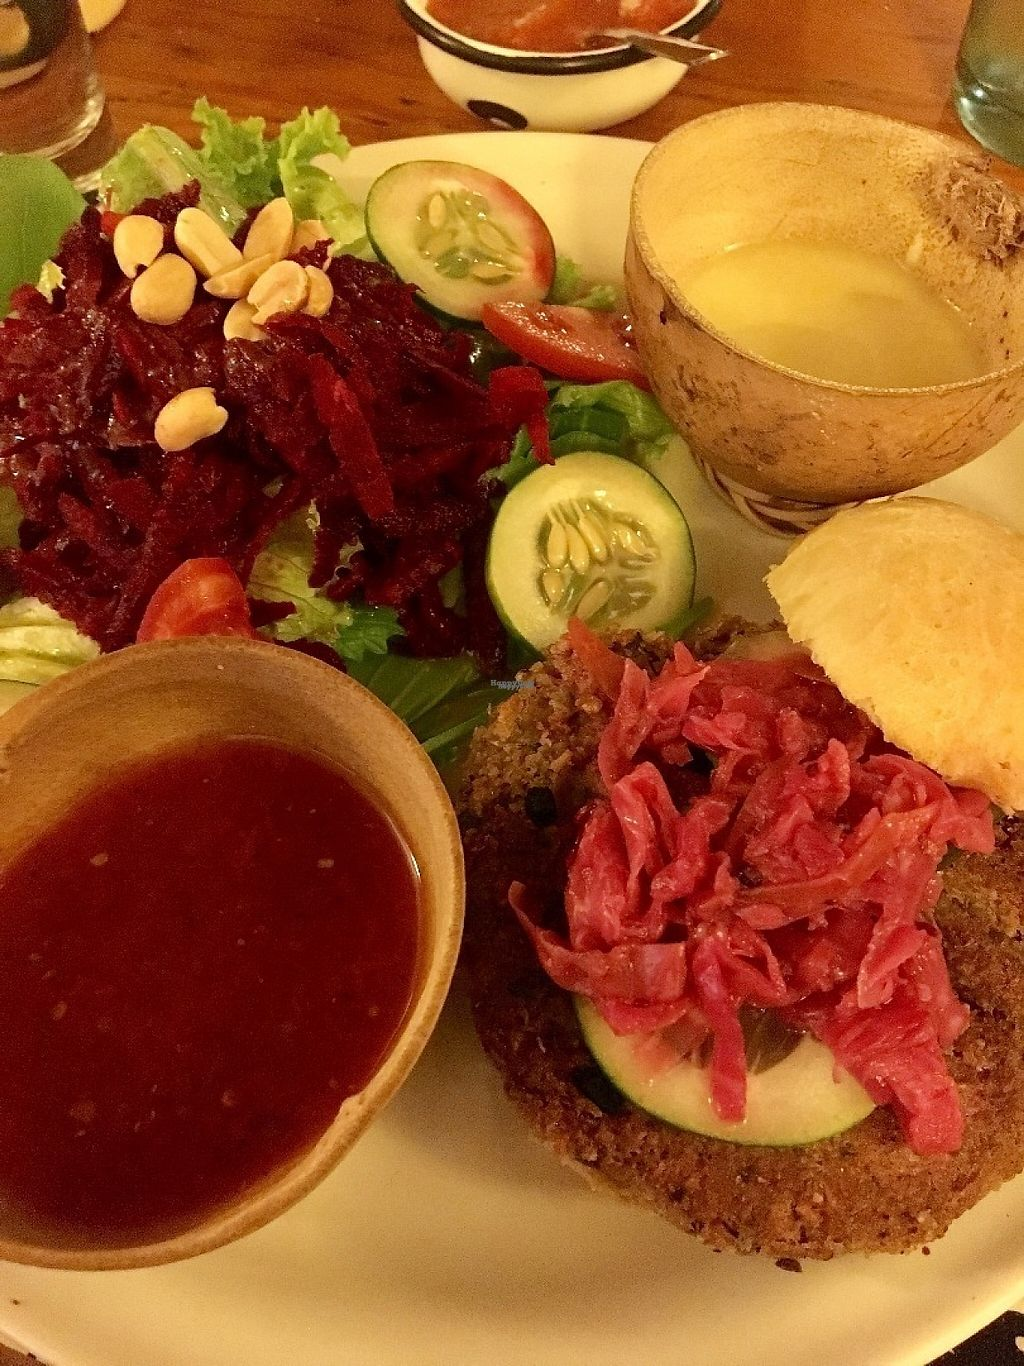 """Photo of Calabacitas Tiernas  by <a href=""""/members/profile/instantxkarmaa"""">instantxkarmaa</a> <br/>The veggie burger with a shaved beet salad <br/> February 8, 2017  - <a href='/contact/abuse/image/42595/224458'>Report</a>"""